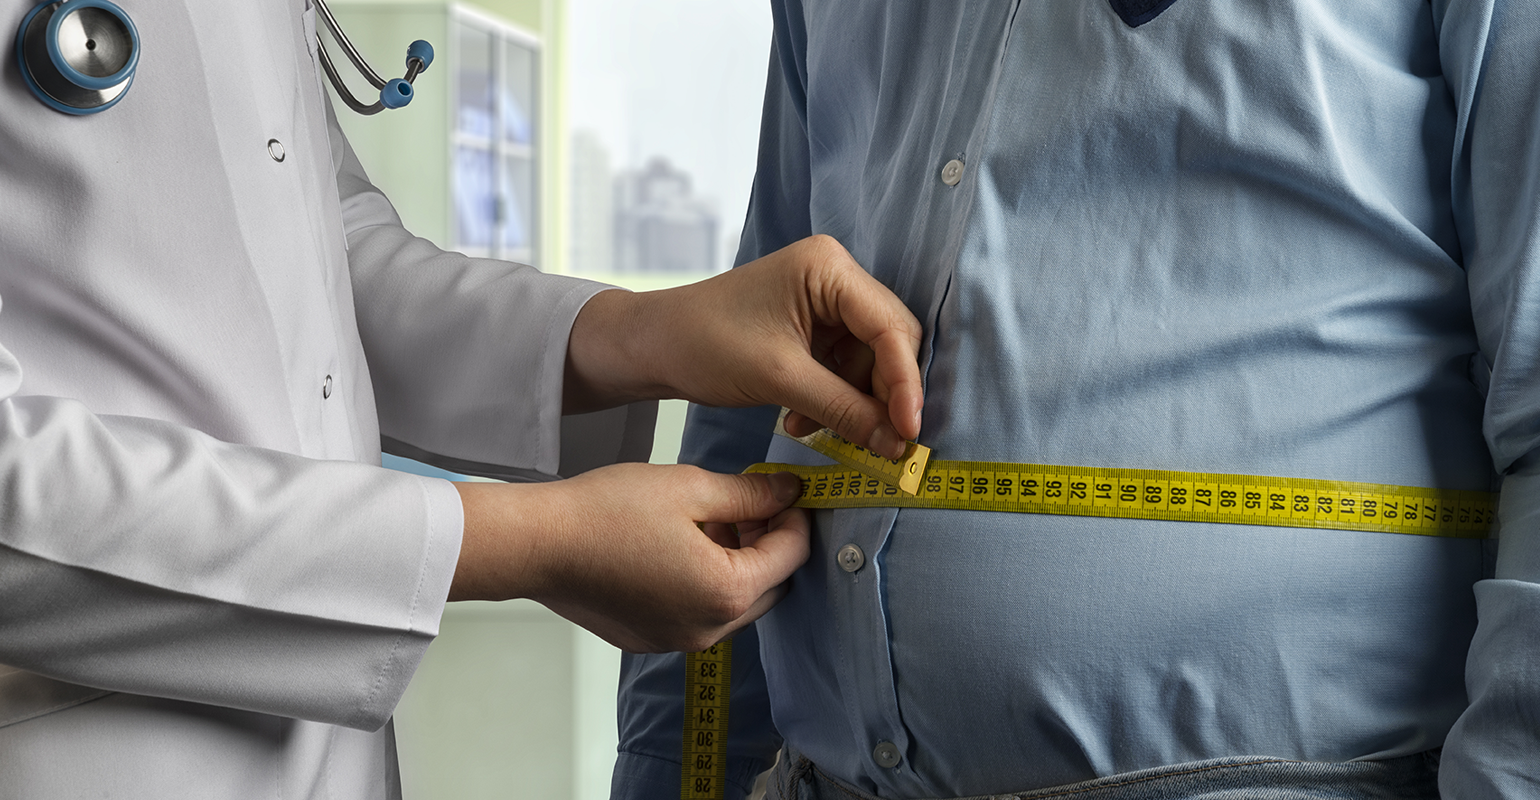 Research: Maintaining weight loss retains cardiometabolic benefits